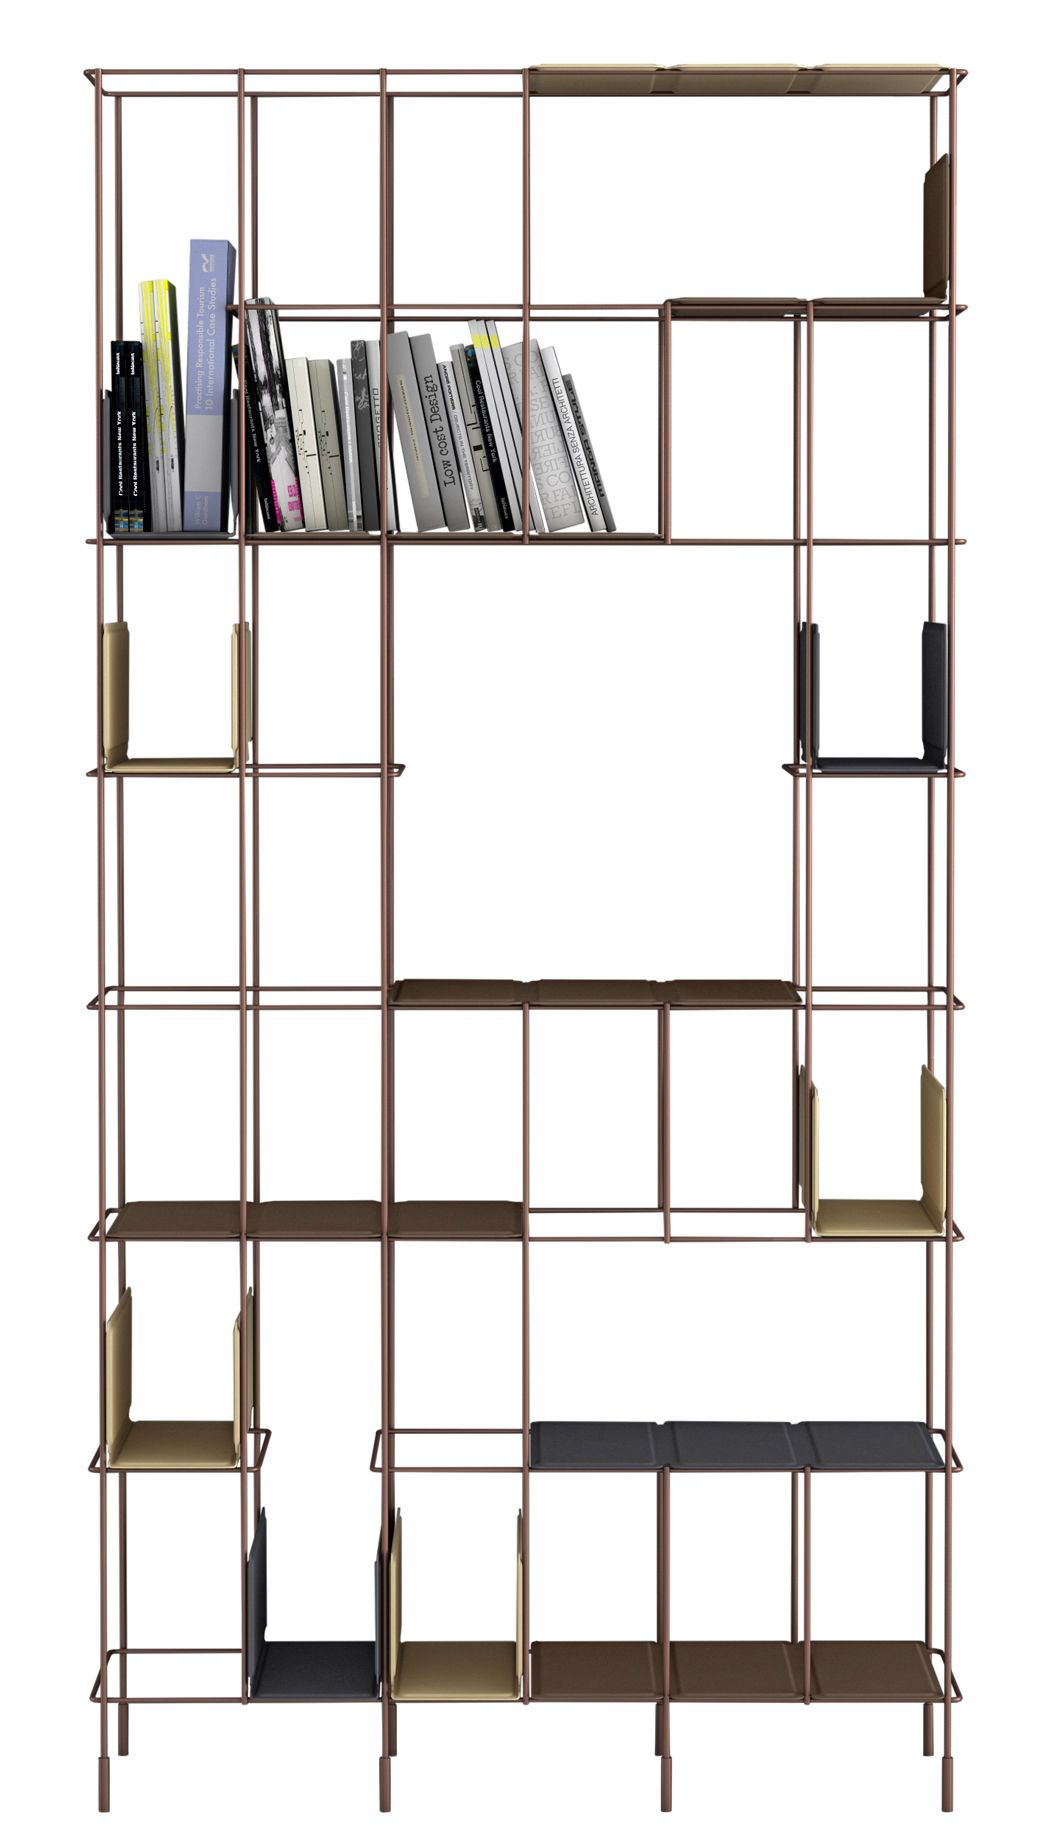 Bibliotheque Network Casamania Bibliotheque Made In Design Etagere Amovible Idees Etageres Mobilier Design